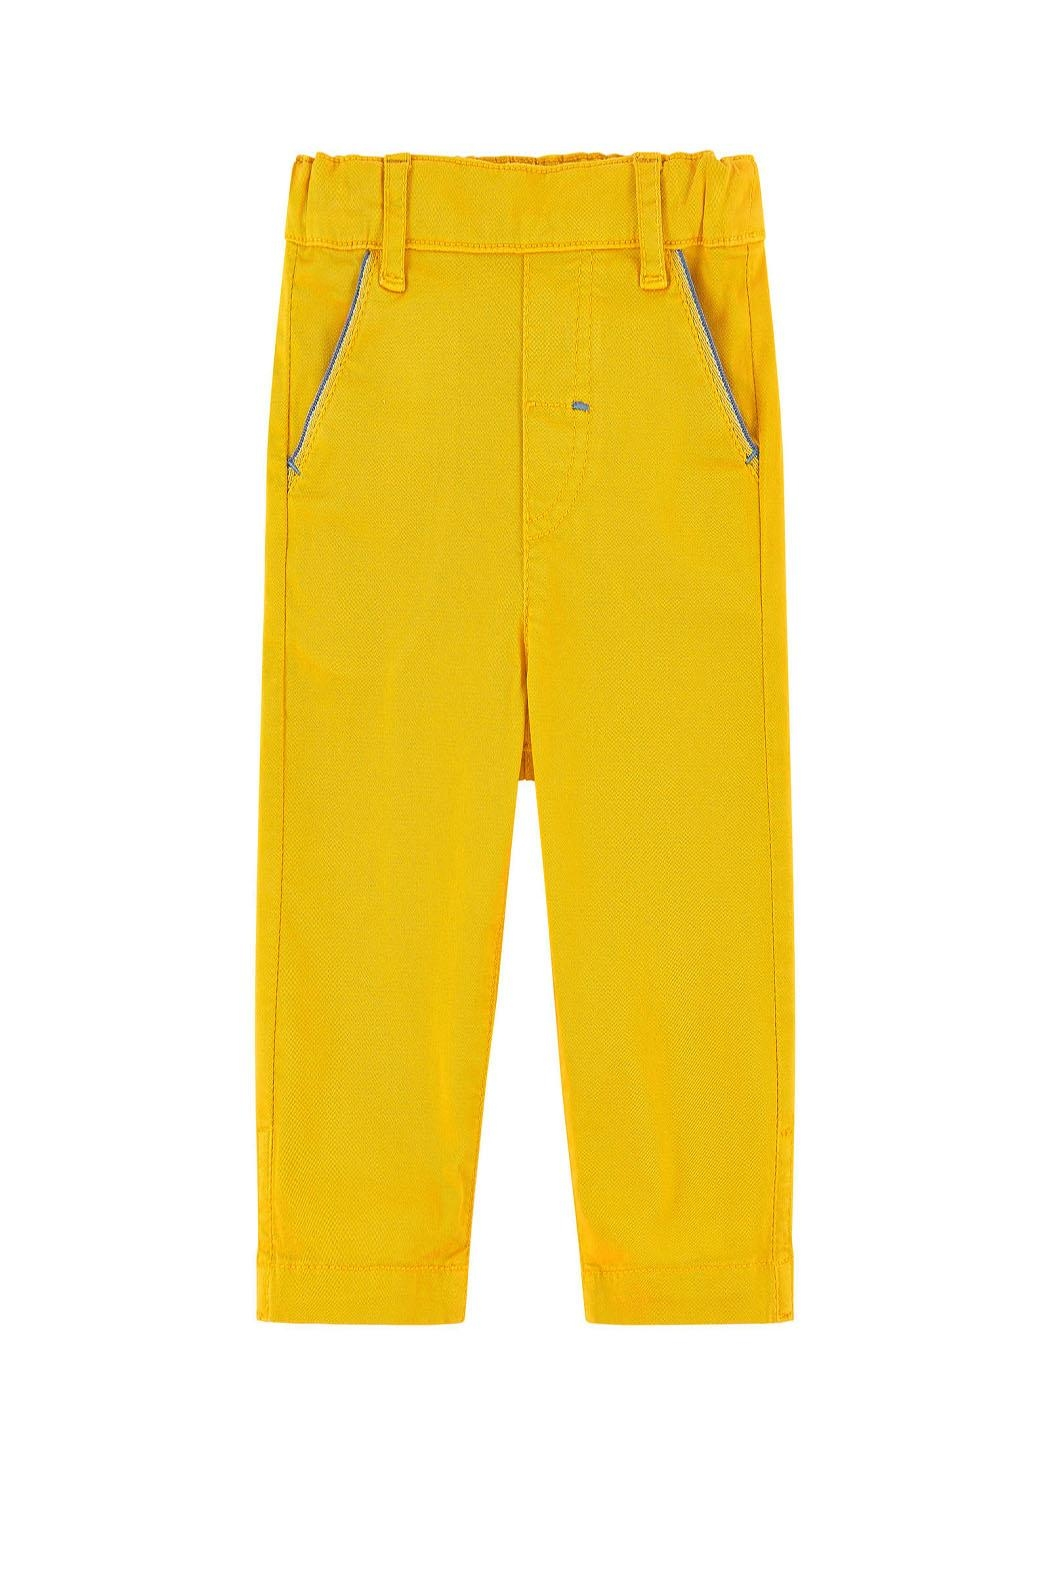 Tartine et Chocolat Yellow Twill Trousers - Front Cropped Image